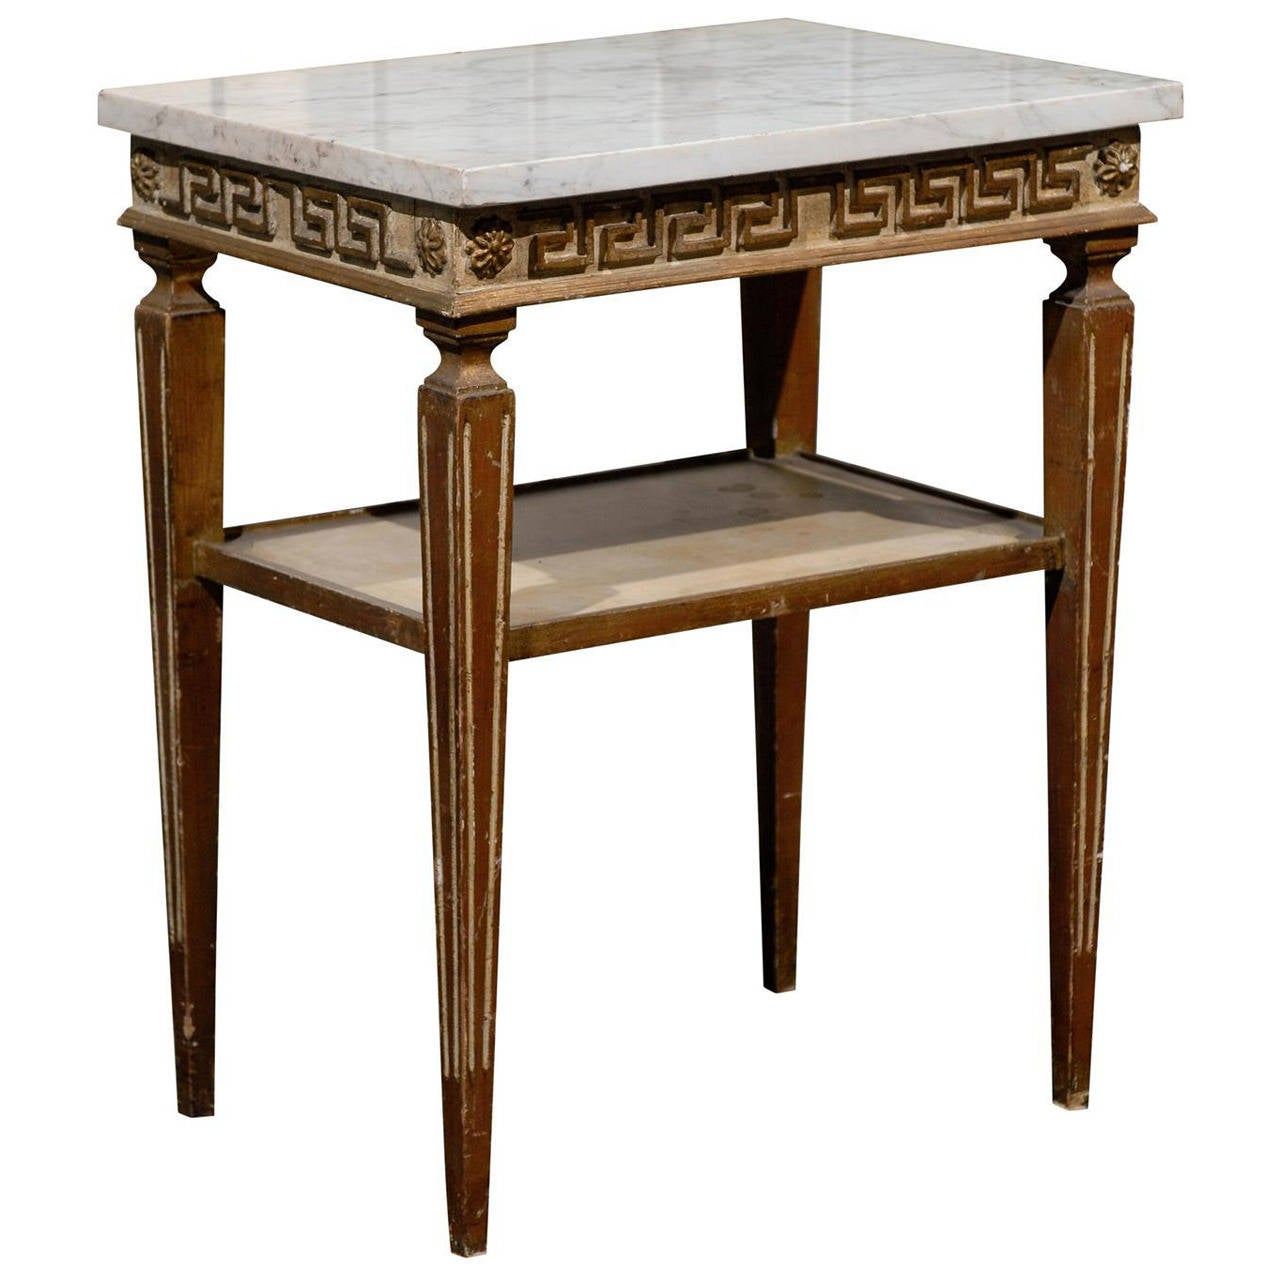 Italian Neoclassical Side Table With Greek Key Motif And White Marble Top 1